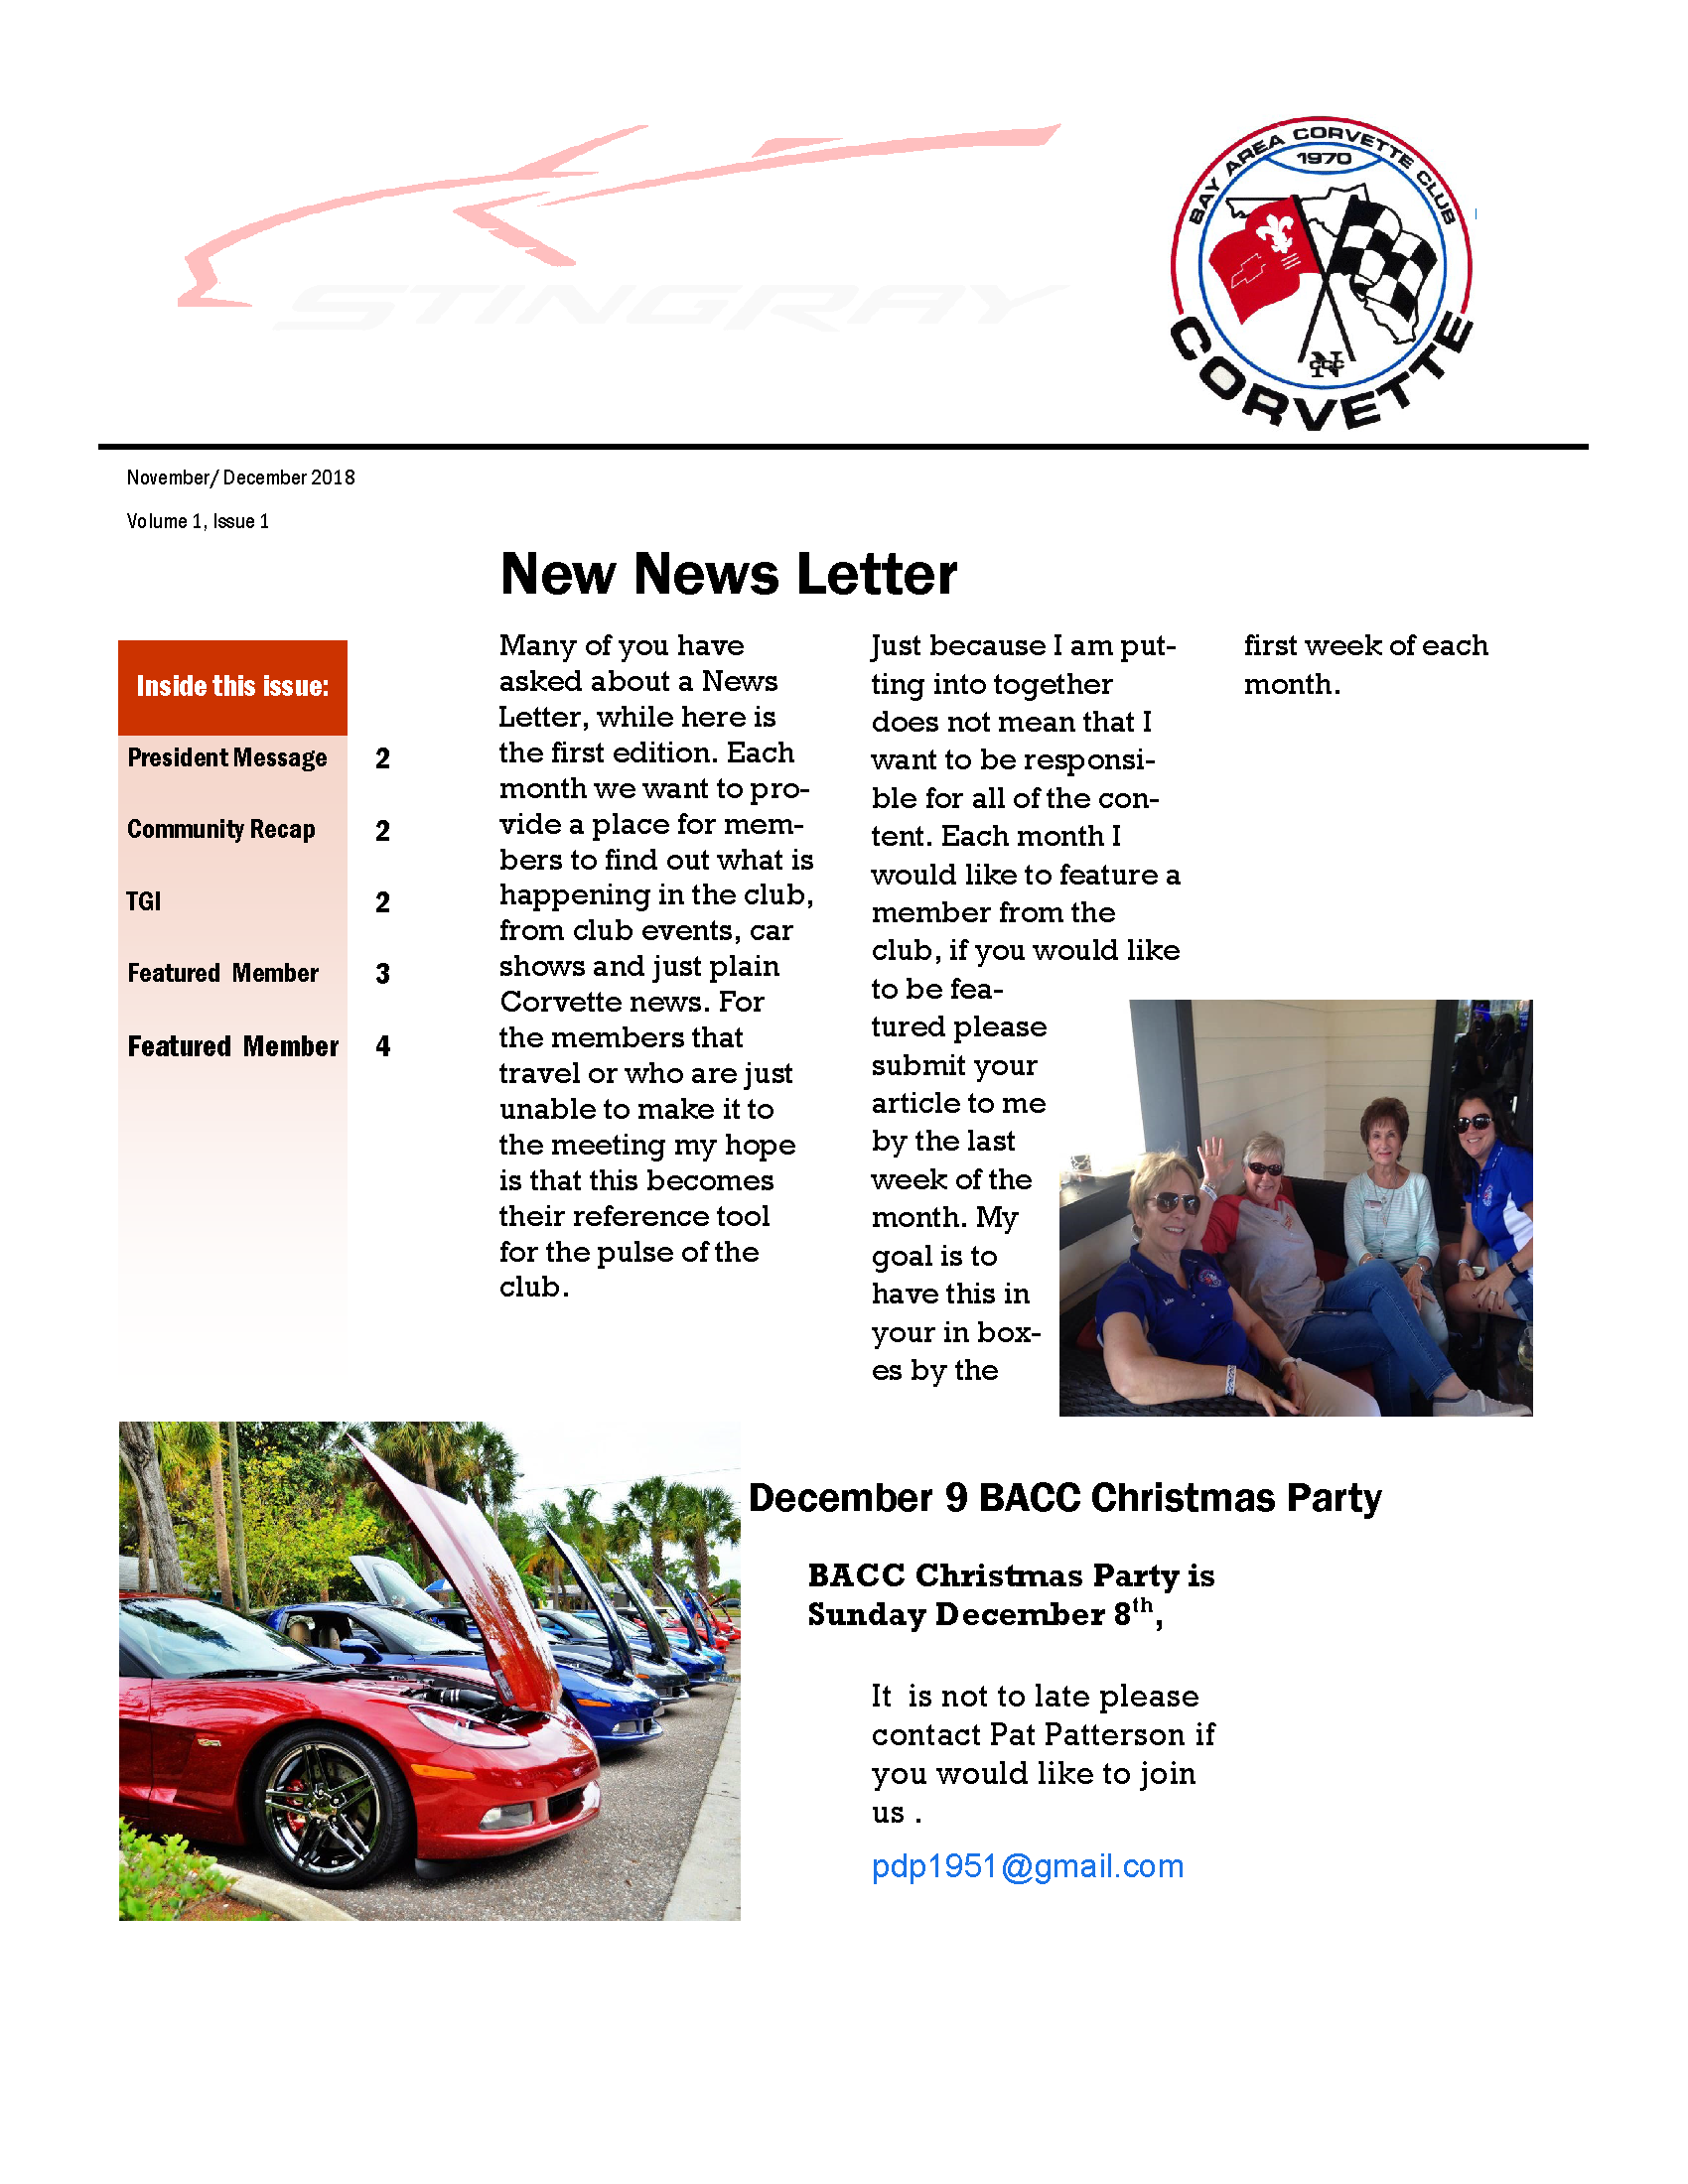 Newsletter: Volume 1, Issue 1